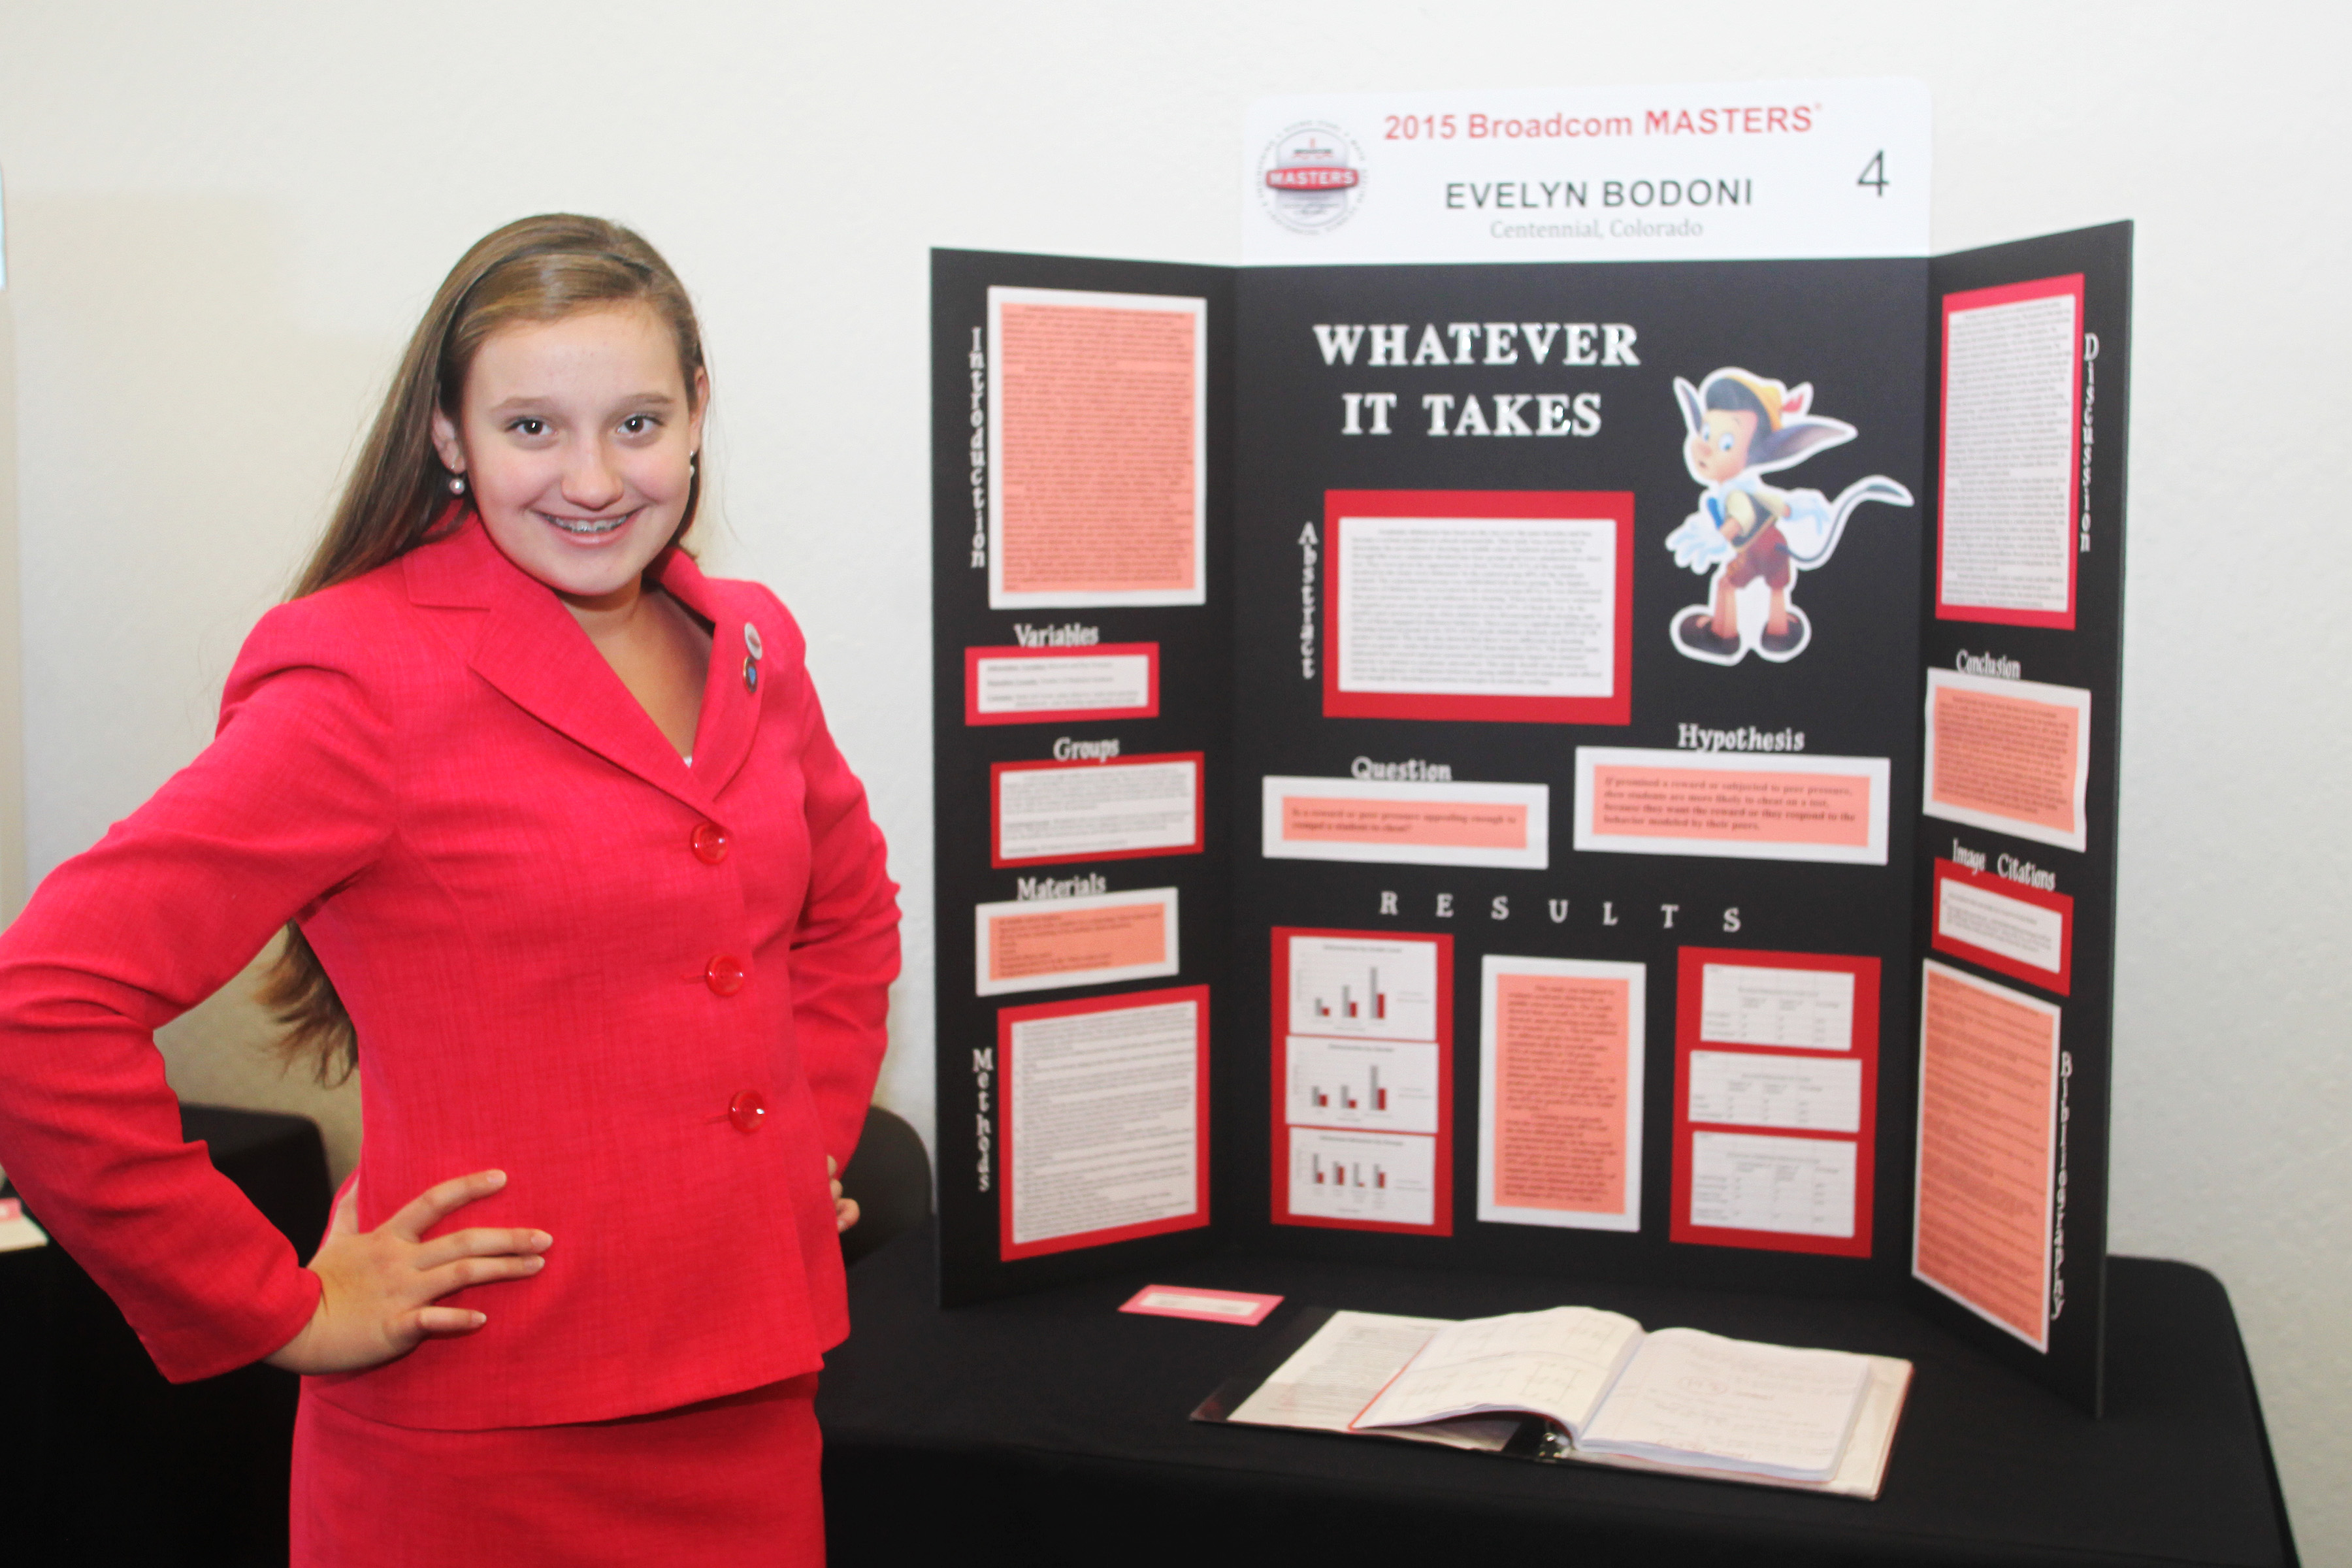 Evelyn explains her 2015 Broadcom MASTERS project to the public.